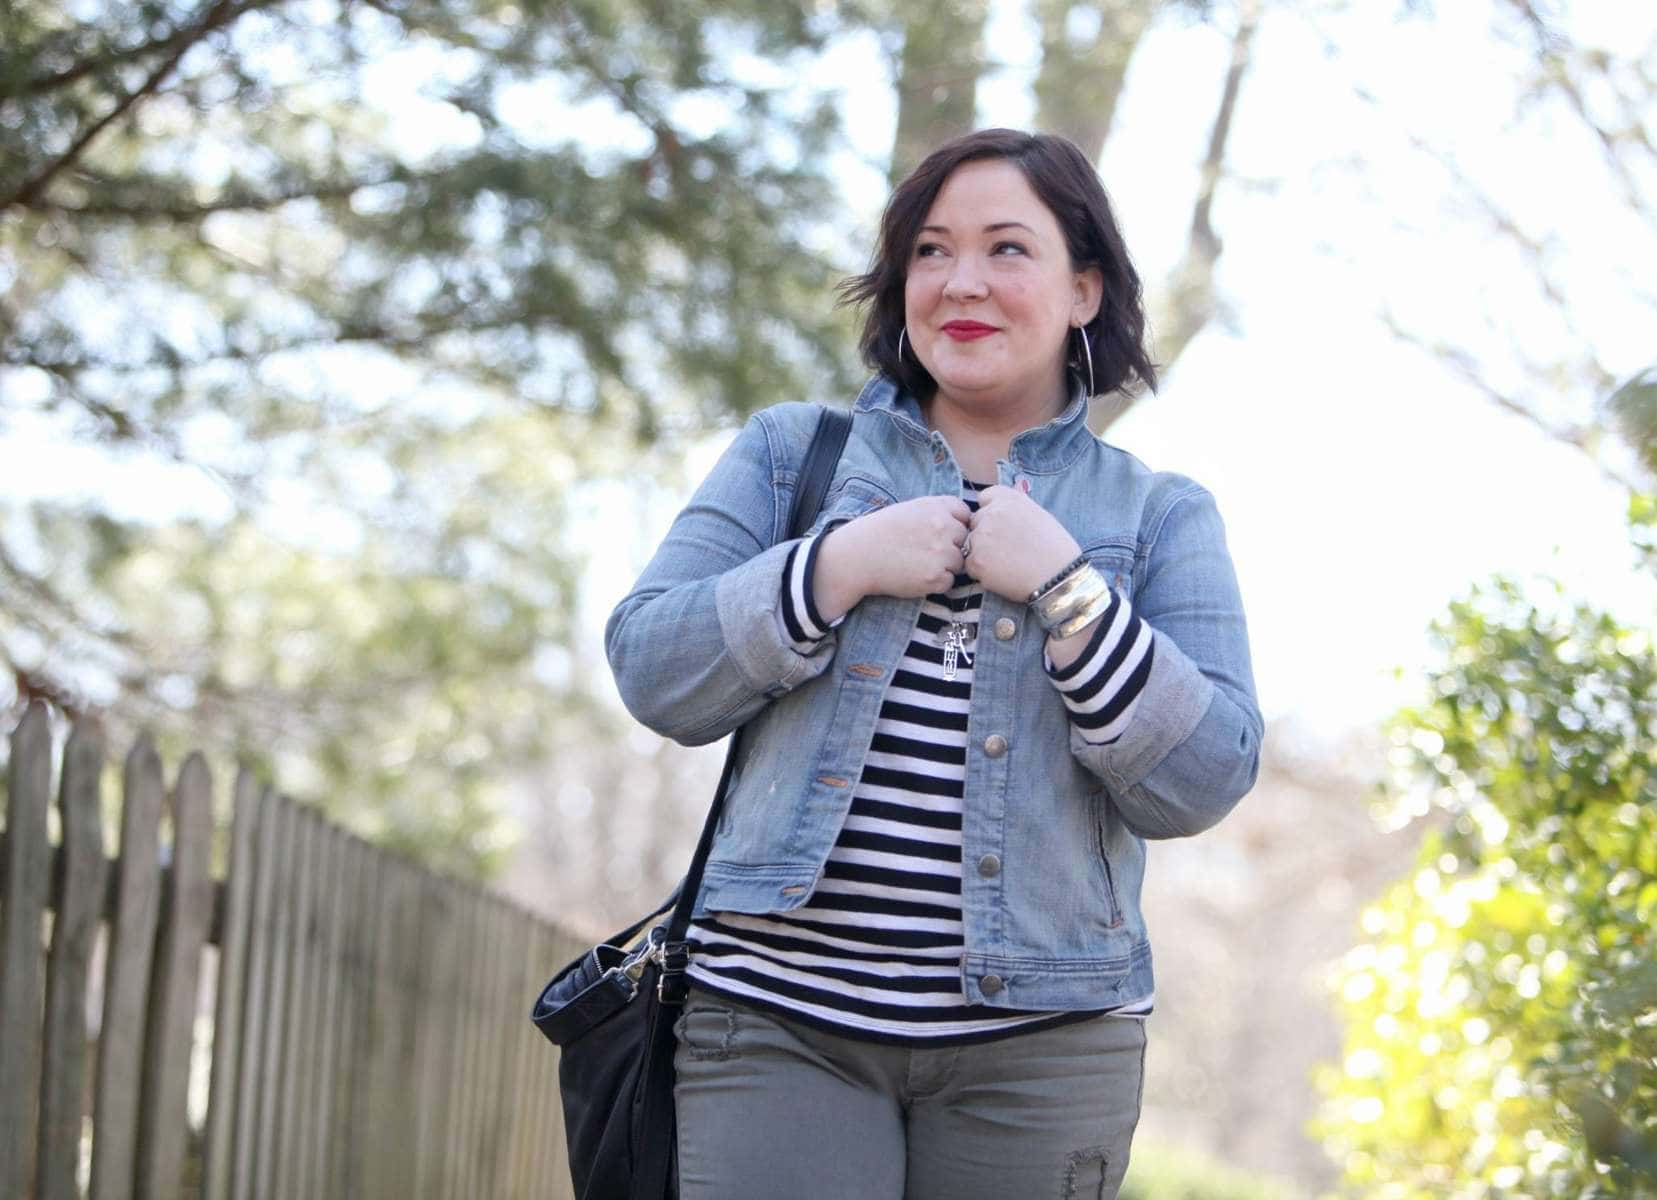 Wardrobe Oxygen featuring a J. Crew Factory denim jacket and striped tee with JAG Jeans Erin cuffed ankle pant